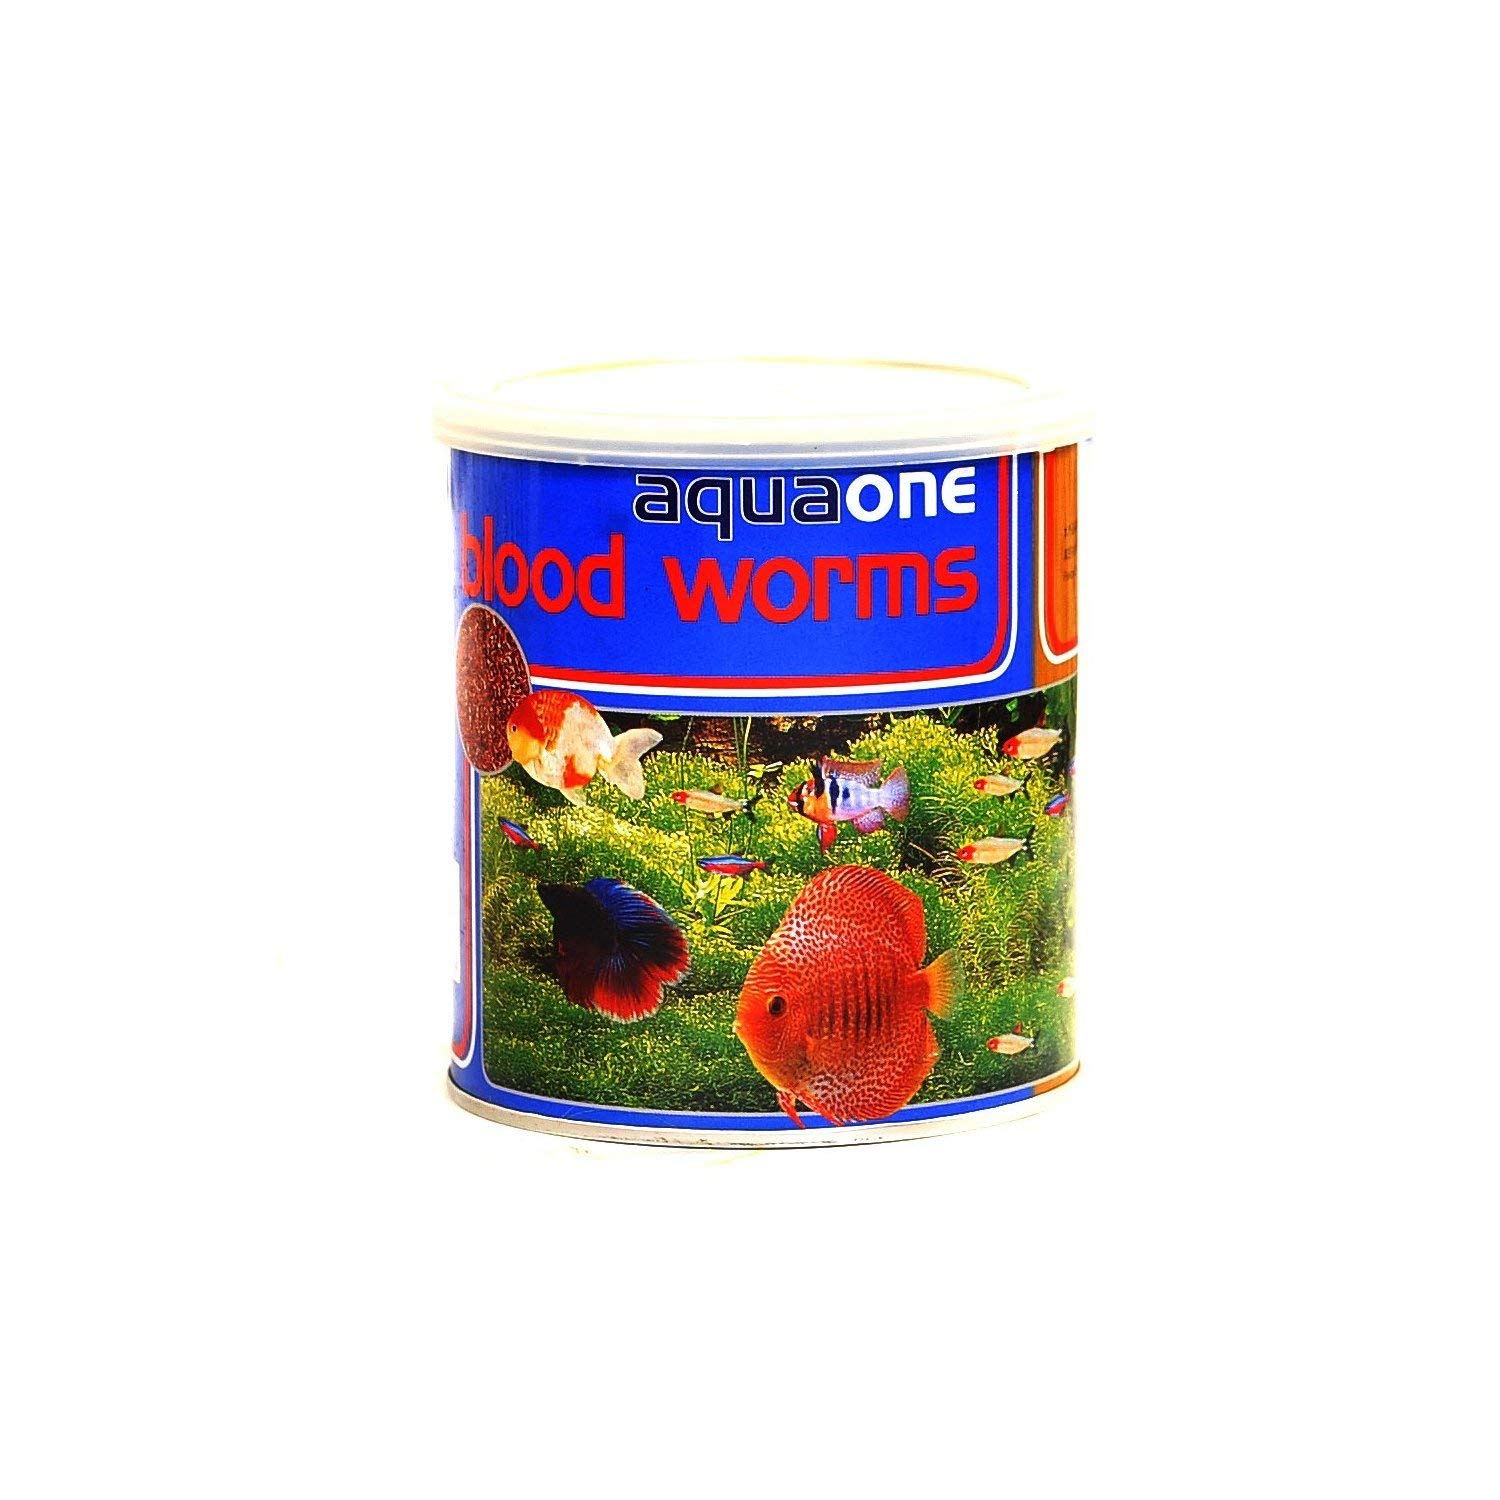 aquaone Freeze Dried Blood Worms Pet Food, 45gm